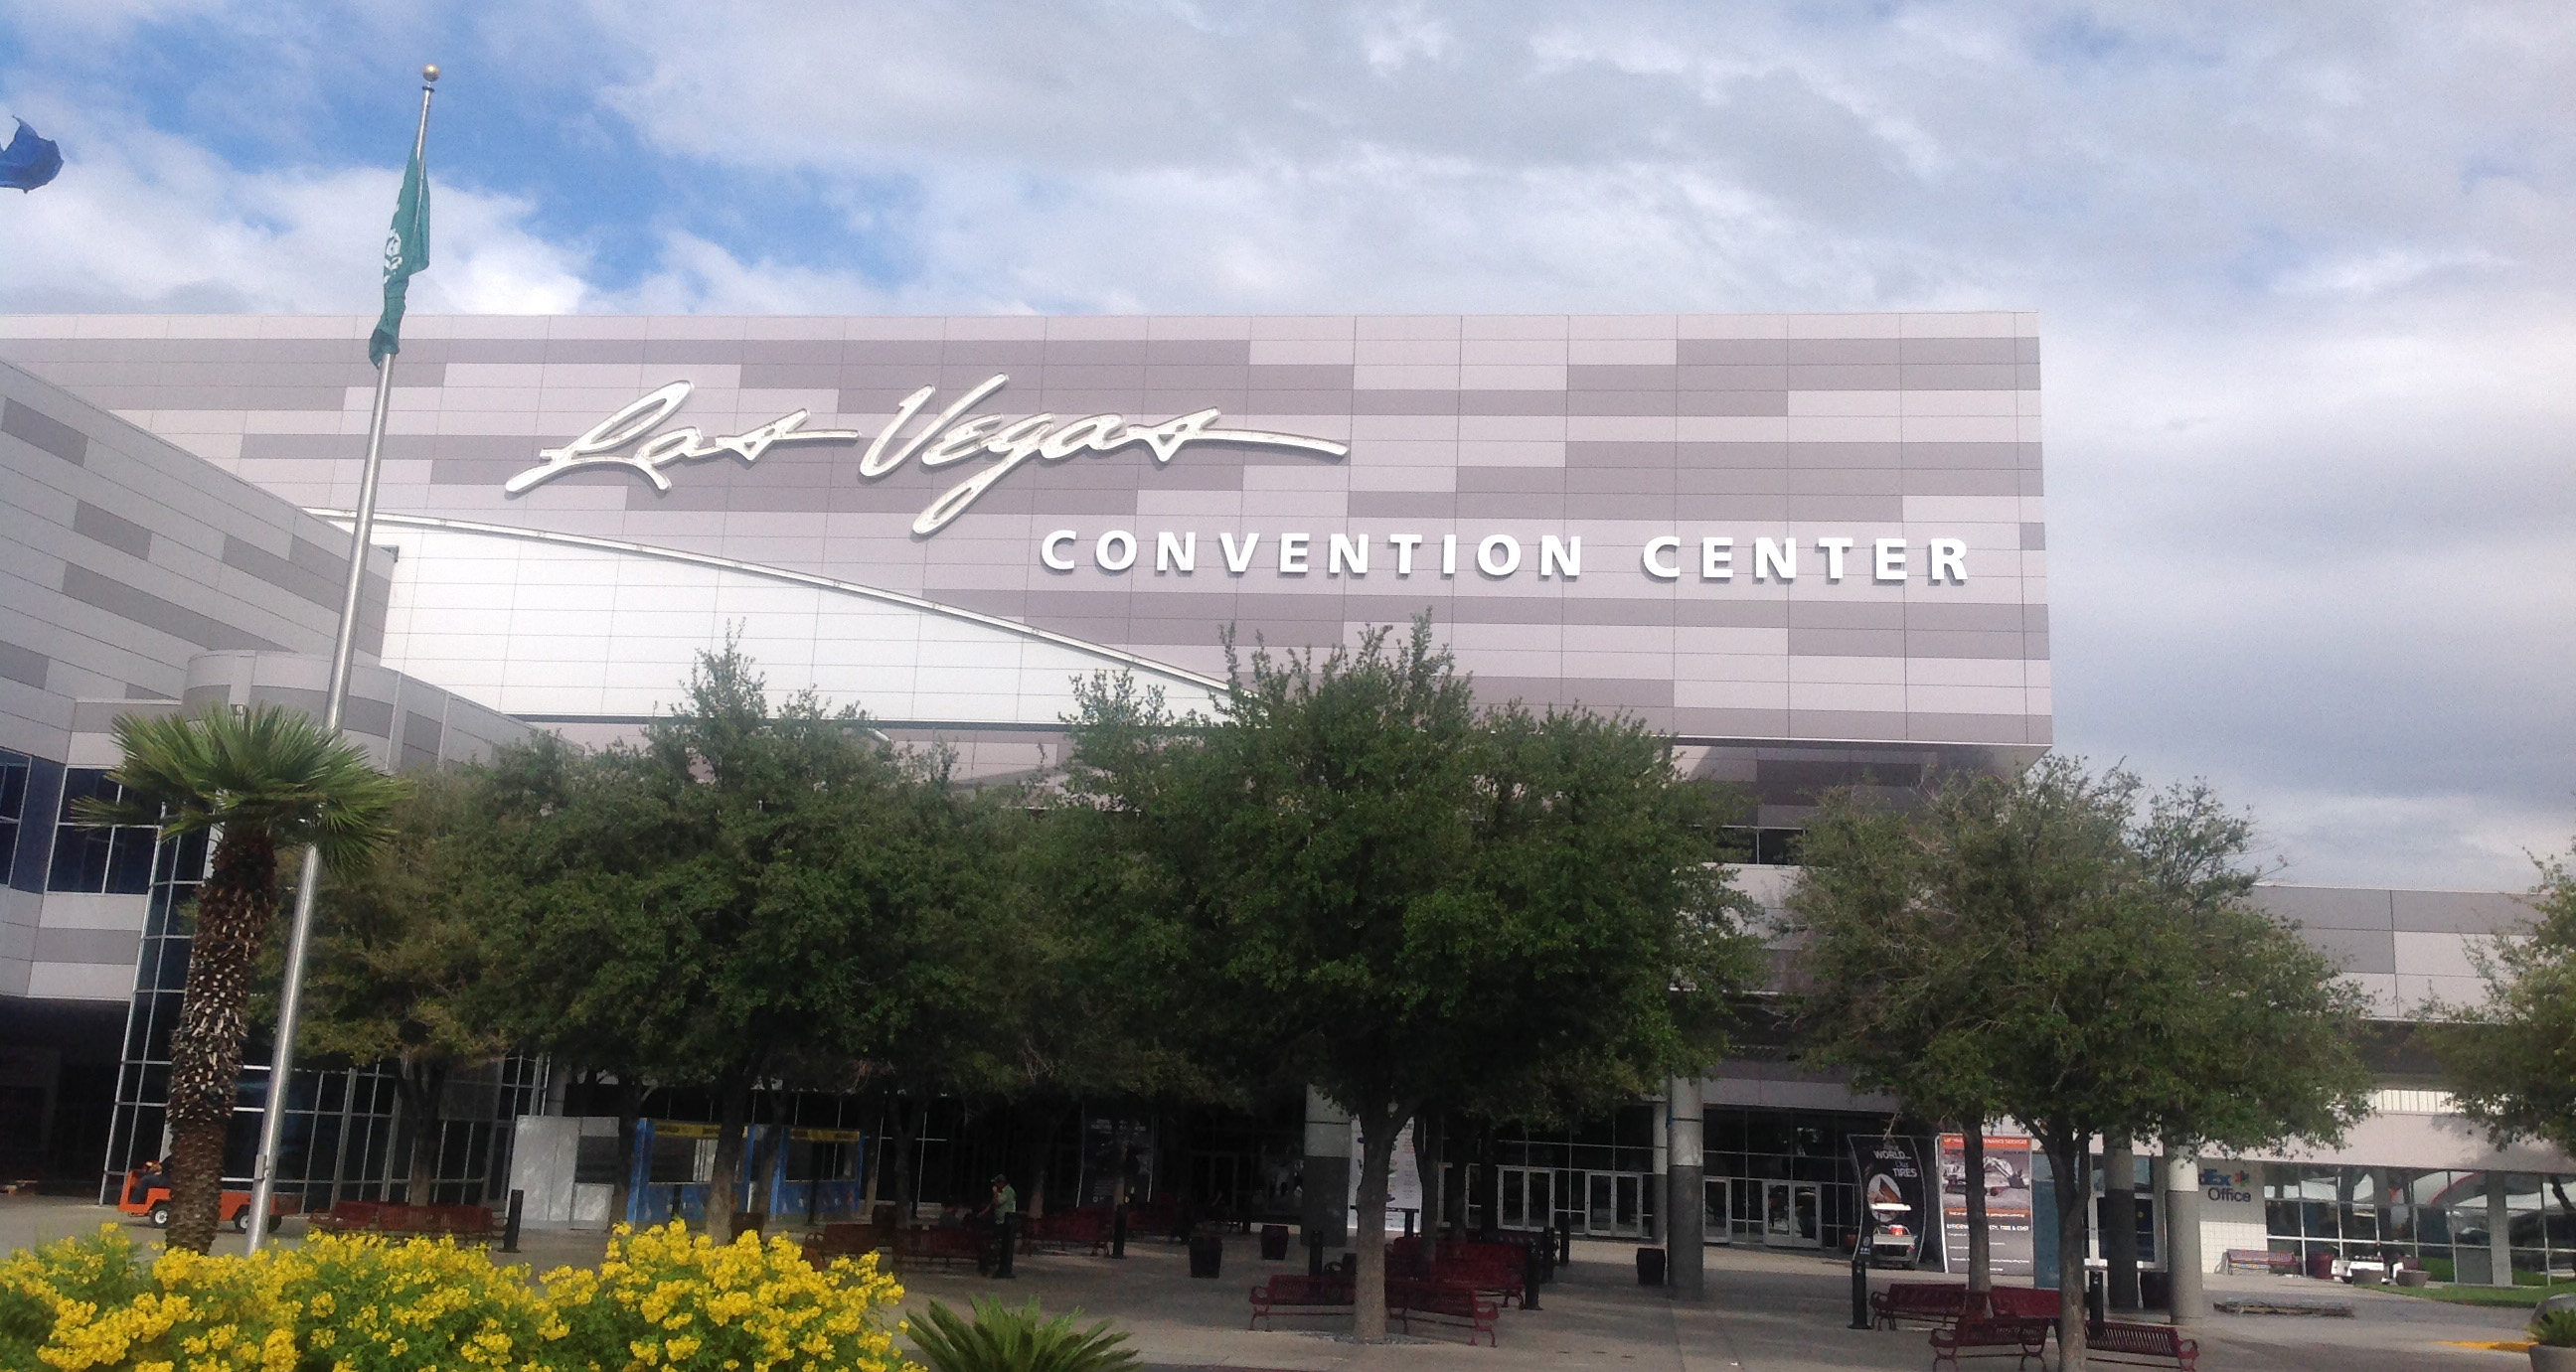 a review of las vegas convention and visitors authority lvcva Find insider information on las vegas attractions, shopping, nightlife, golf, restaurants, spas, casinos, hotels and resorts we're the authority on shows and events, food and drink options, things to do and more.